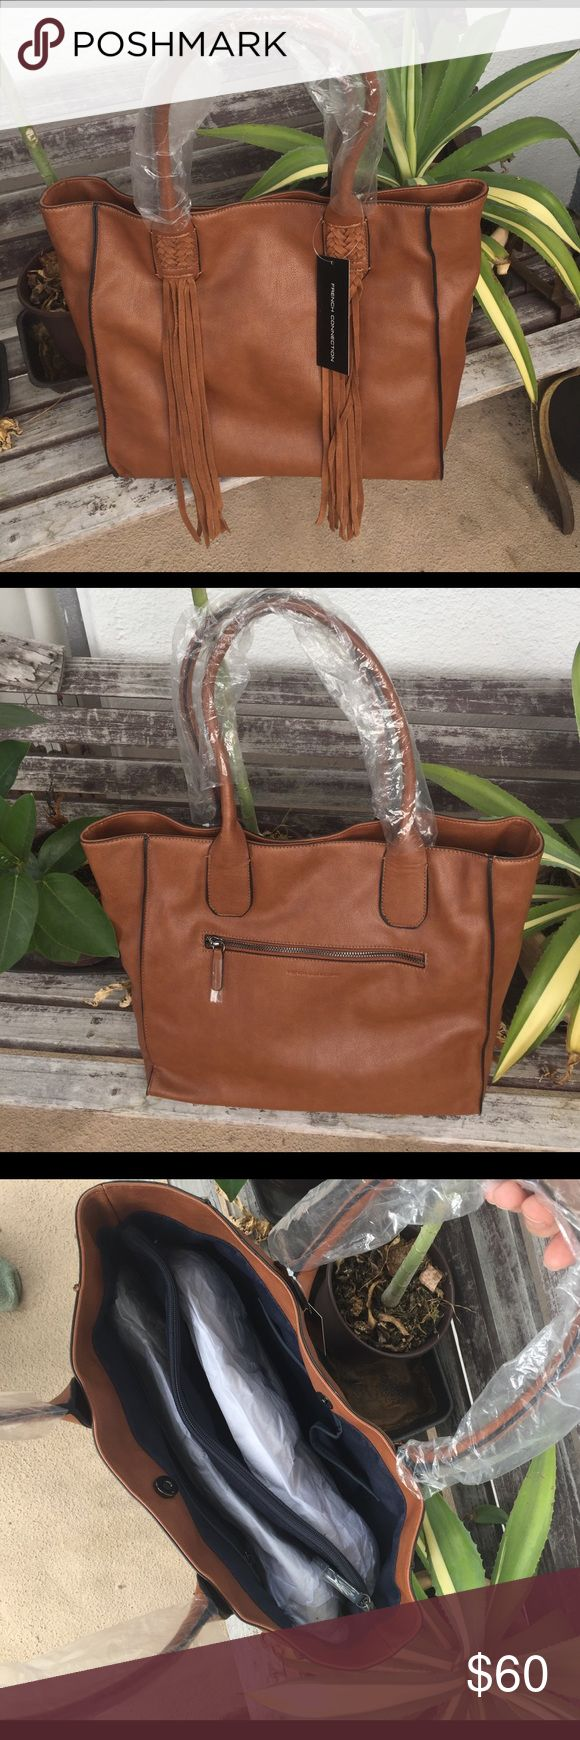 French Connection Laurel  tote bag 💼 Brand new with tags French Connection tote bag 💼. Laurel tote. French Connection Bags Totes